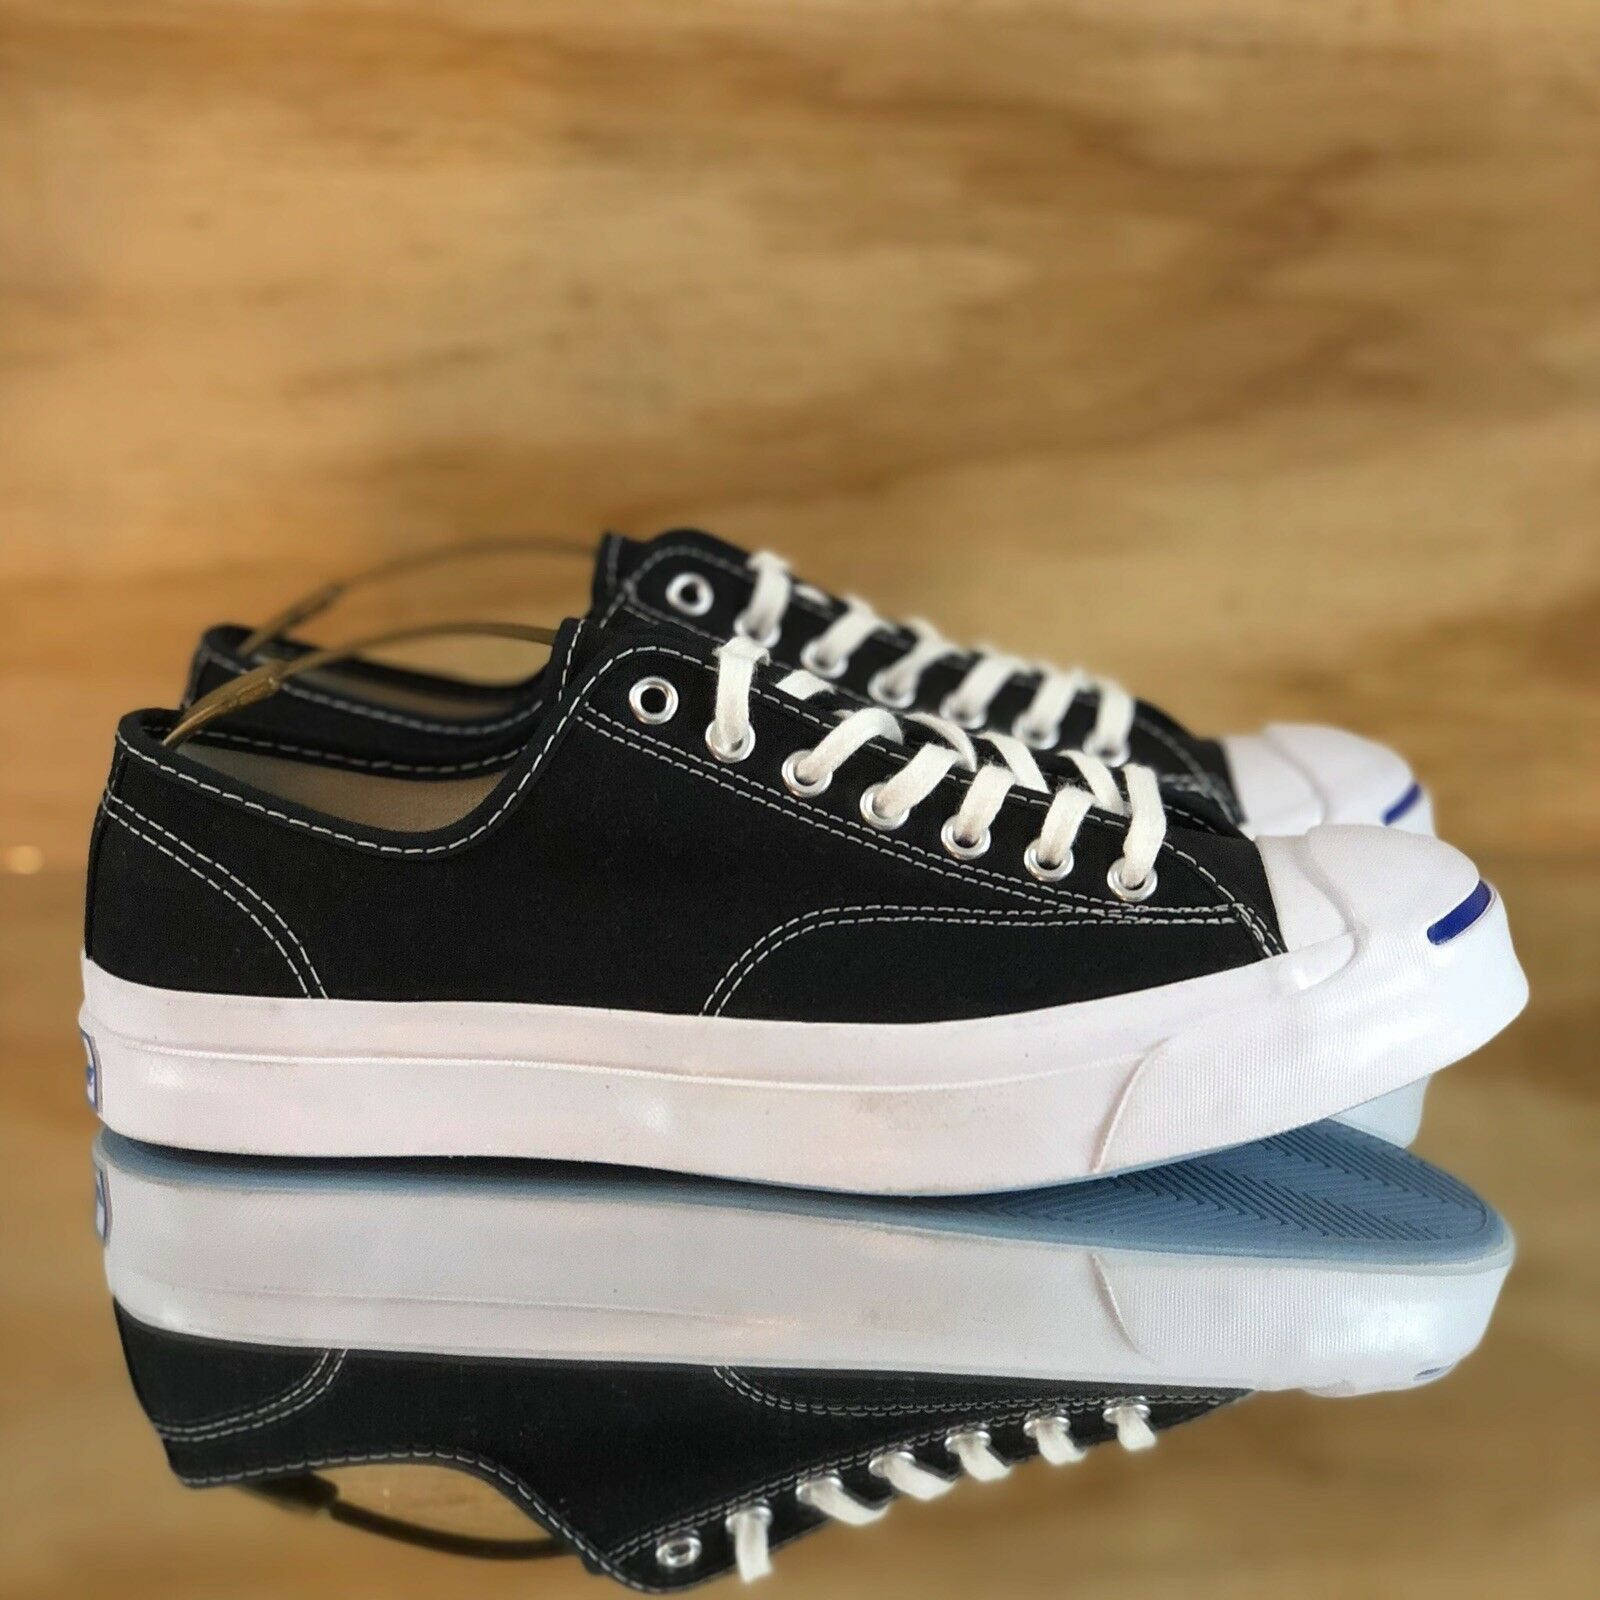 Converse Jack Purcell firma Top Ox Negro Blanco Low Top firma tenis [147560C] 786100